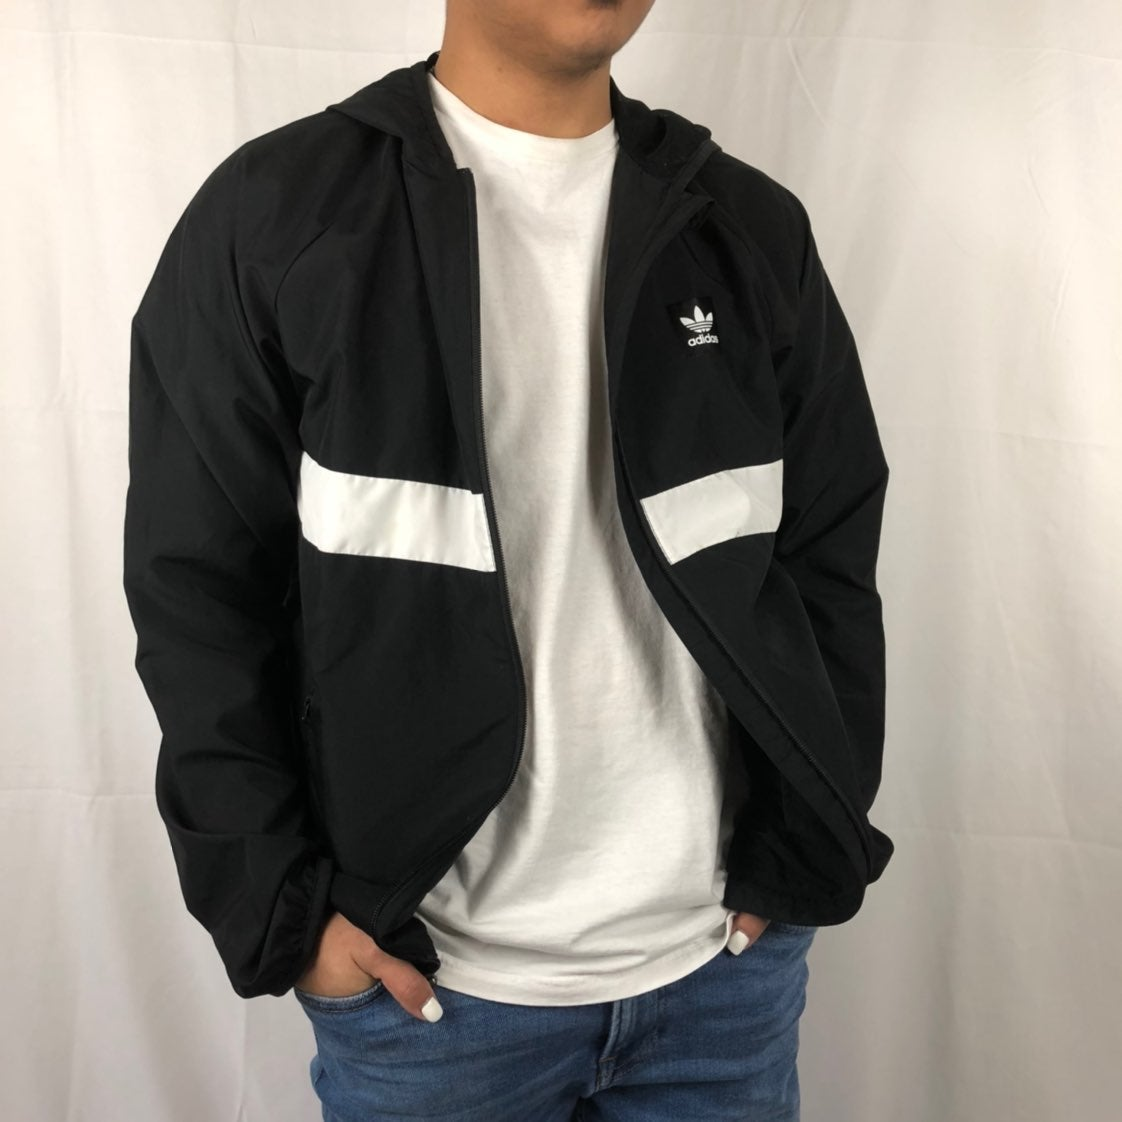 Adidas Lightweight Black Windbreaker